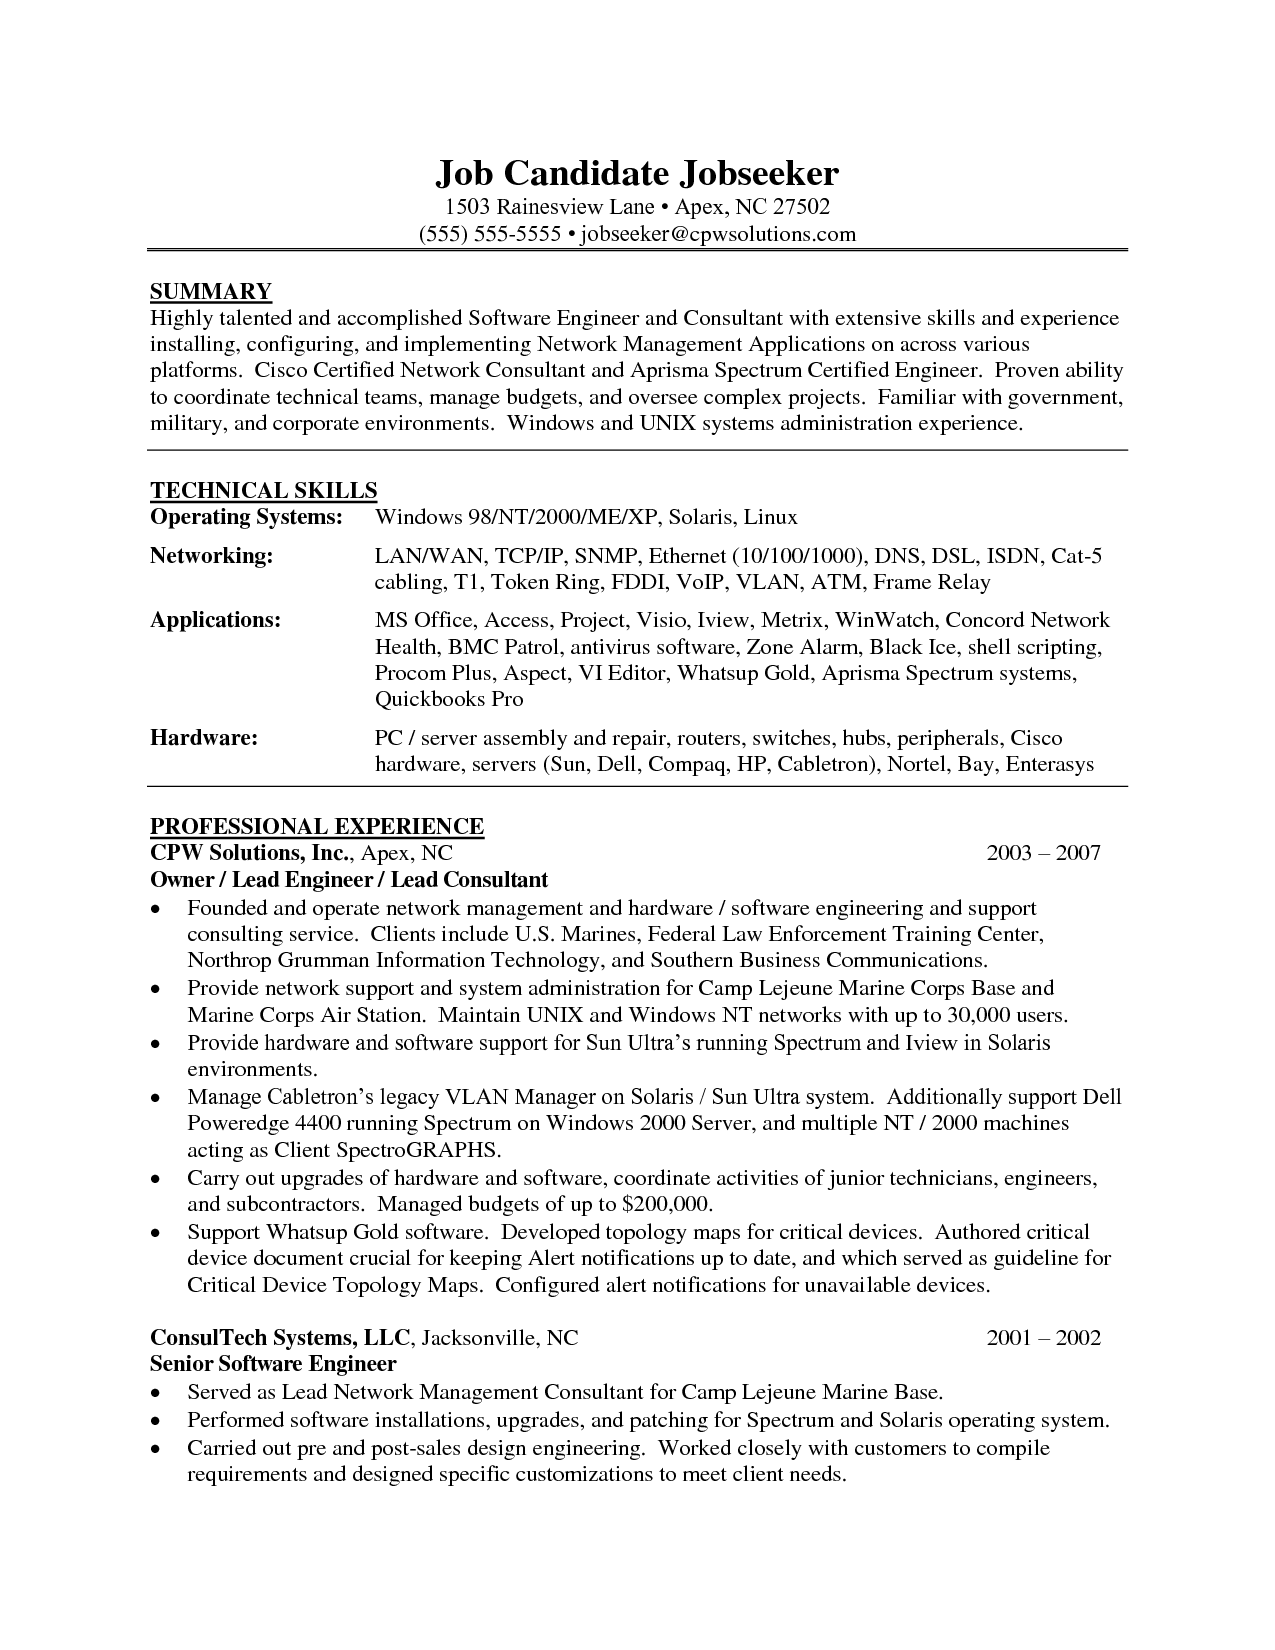 Samples Of Resume Summary How To Write Software Engineer Resume